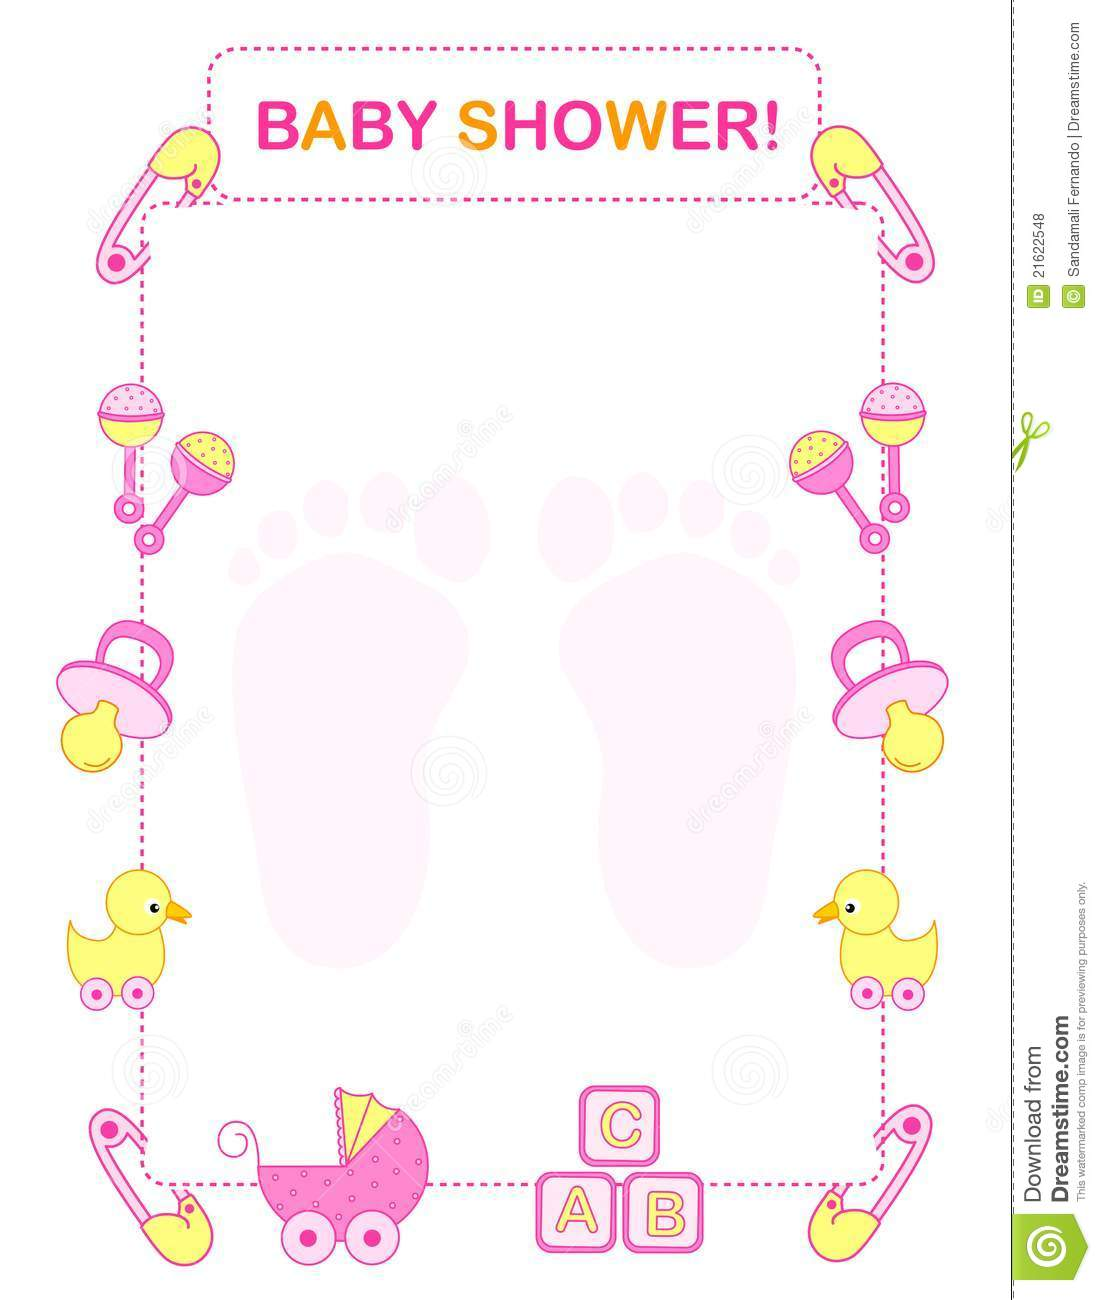 8051 Shower free clipart.